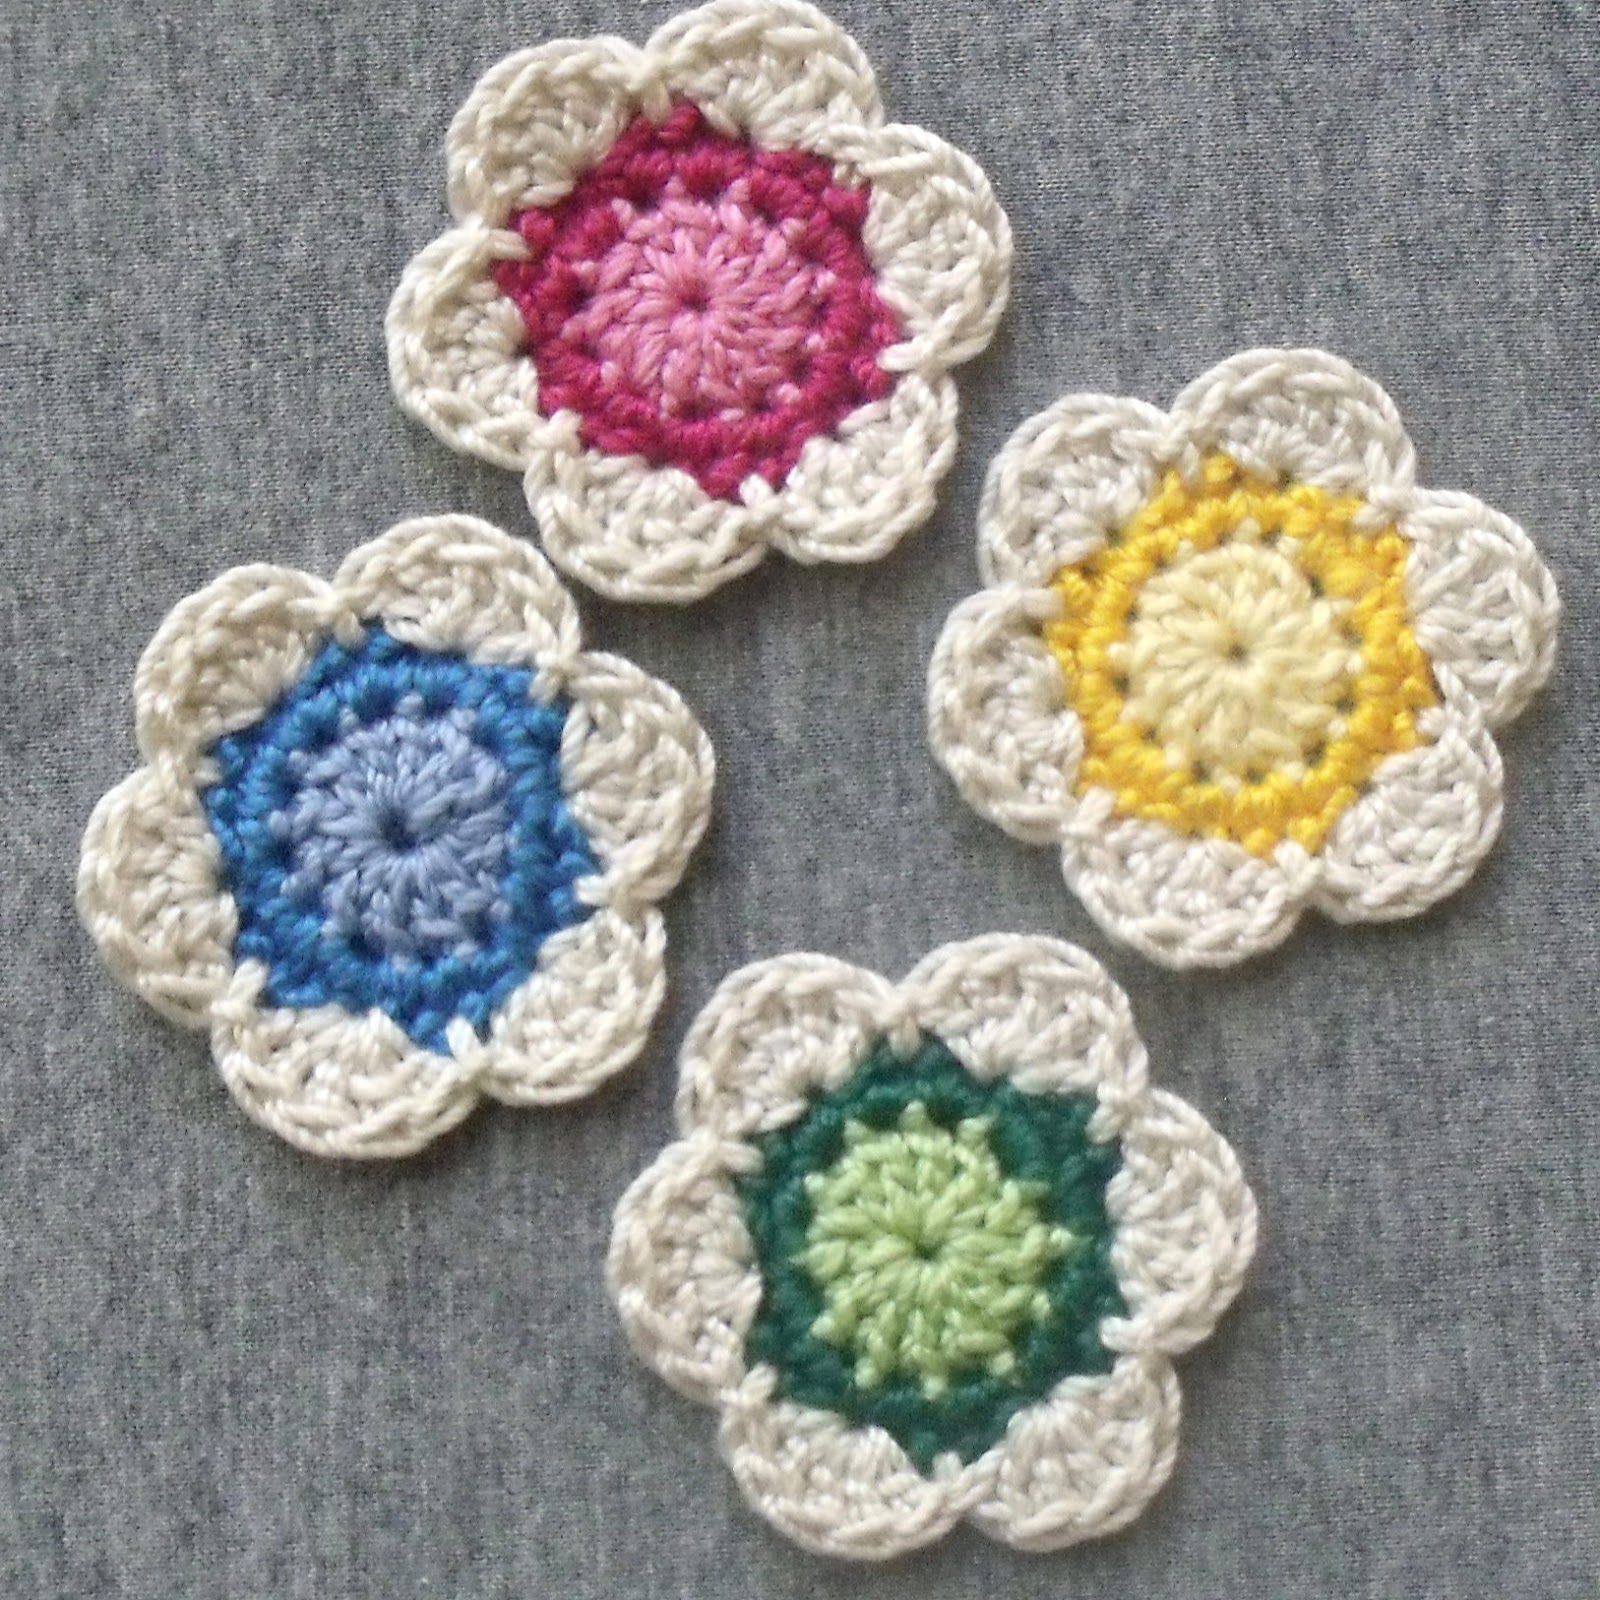 Crochet Patterns Of Flowers : Indecisively Chic: Lil Cute Crochet Flower